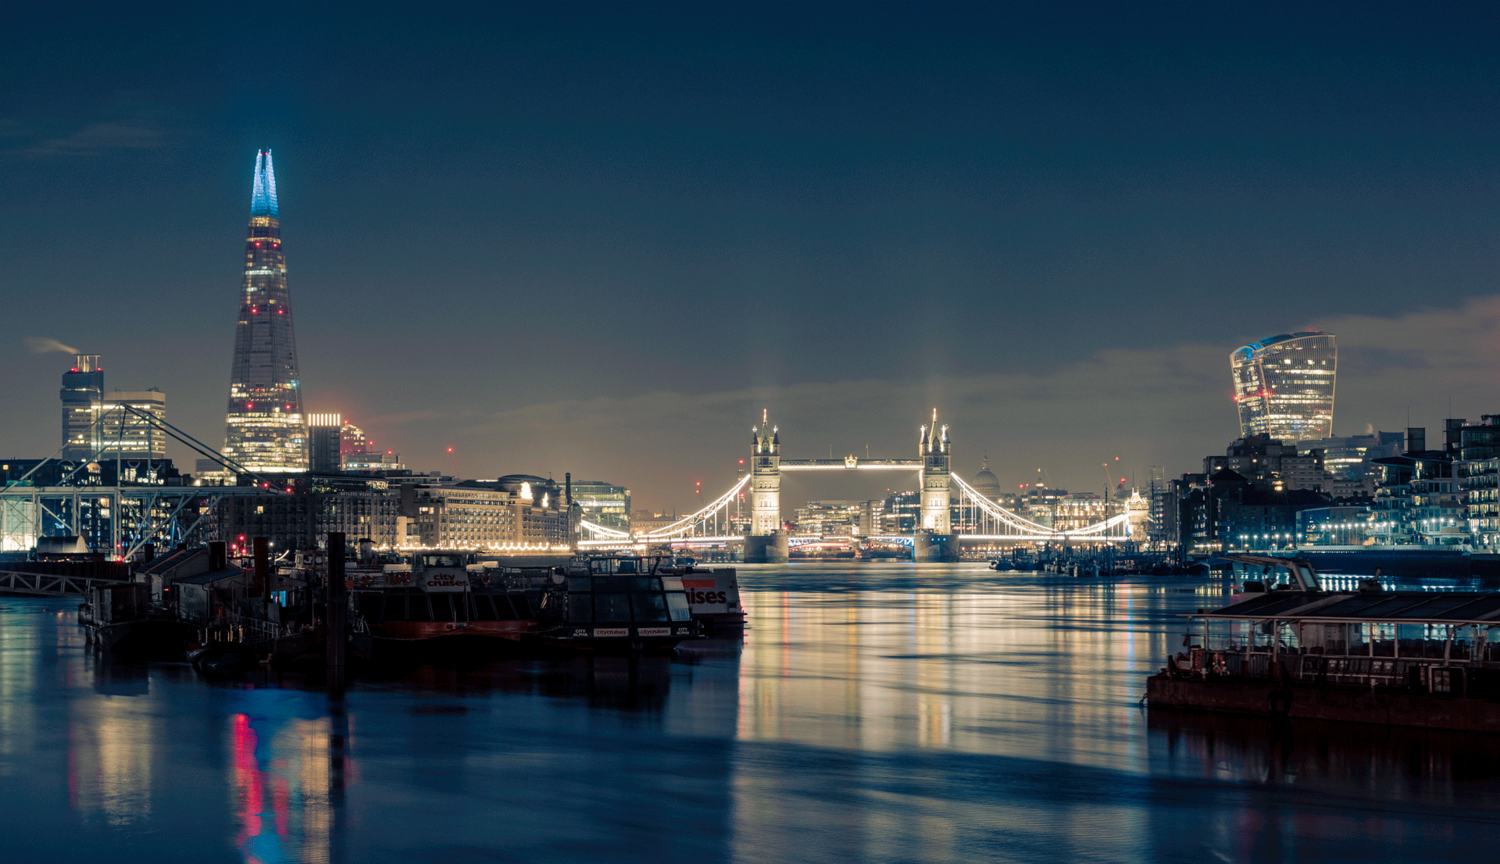 The View From Rotherhithe by Dom Garforth